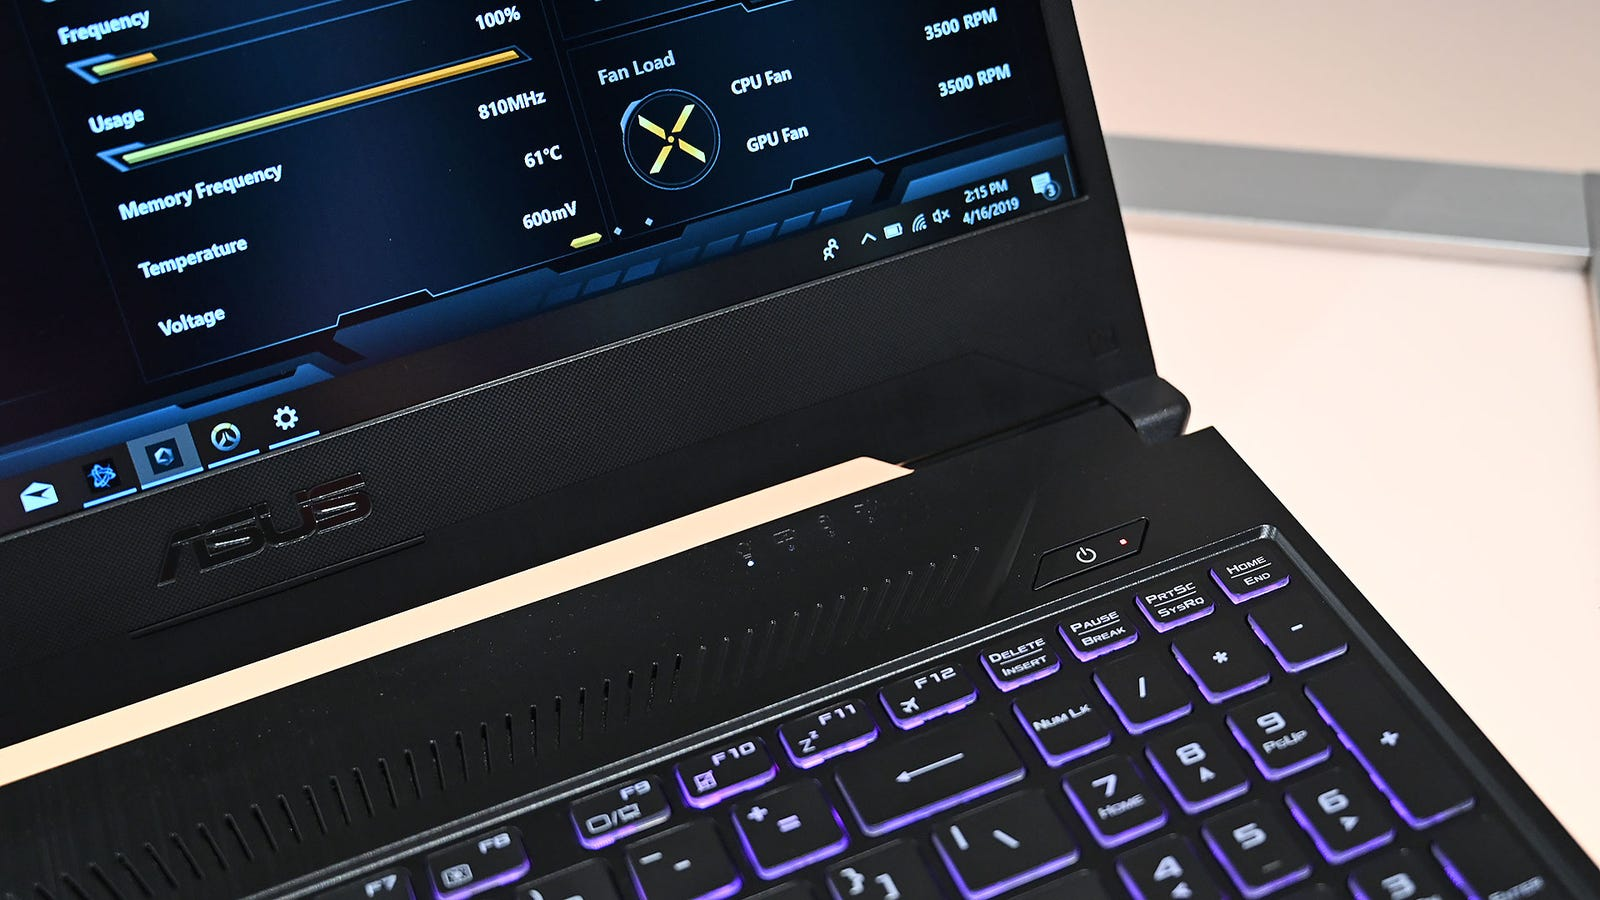 Illustration for article titled Asus Basically Overhauled Its Entire Gaming Laptop Lineup With Faster Everything